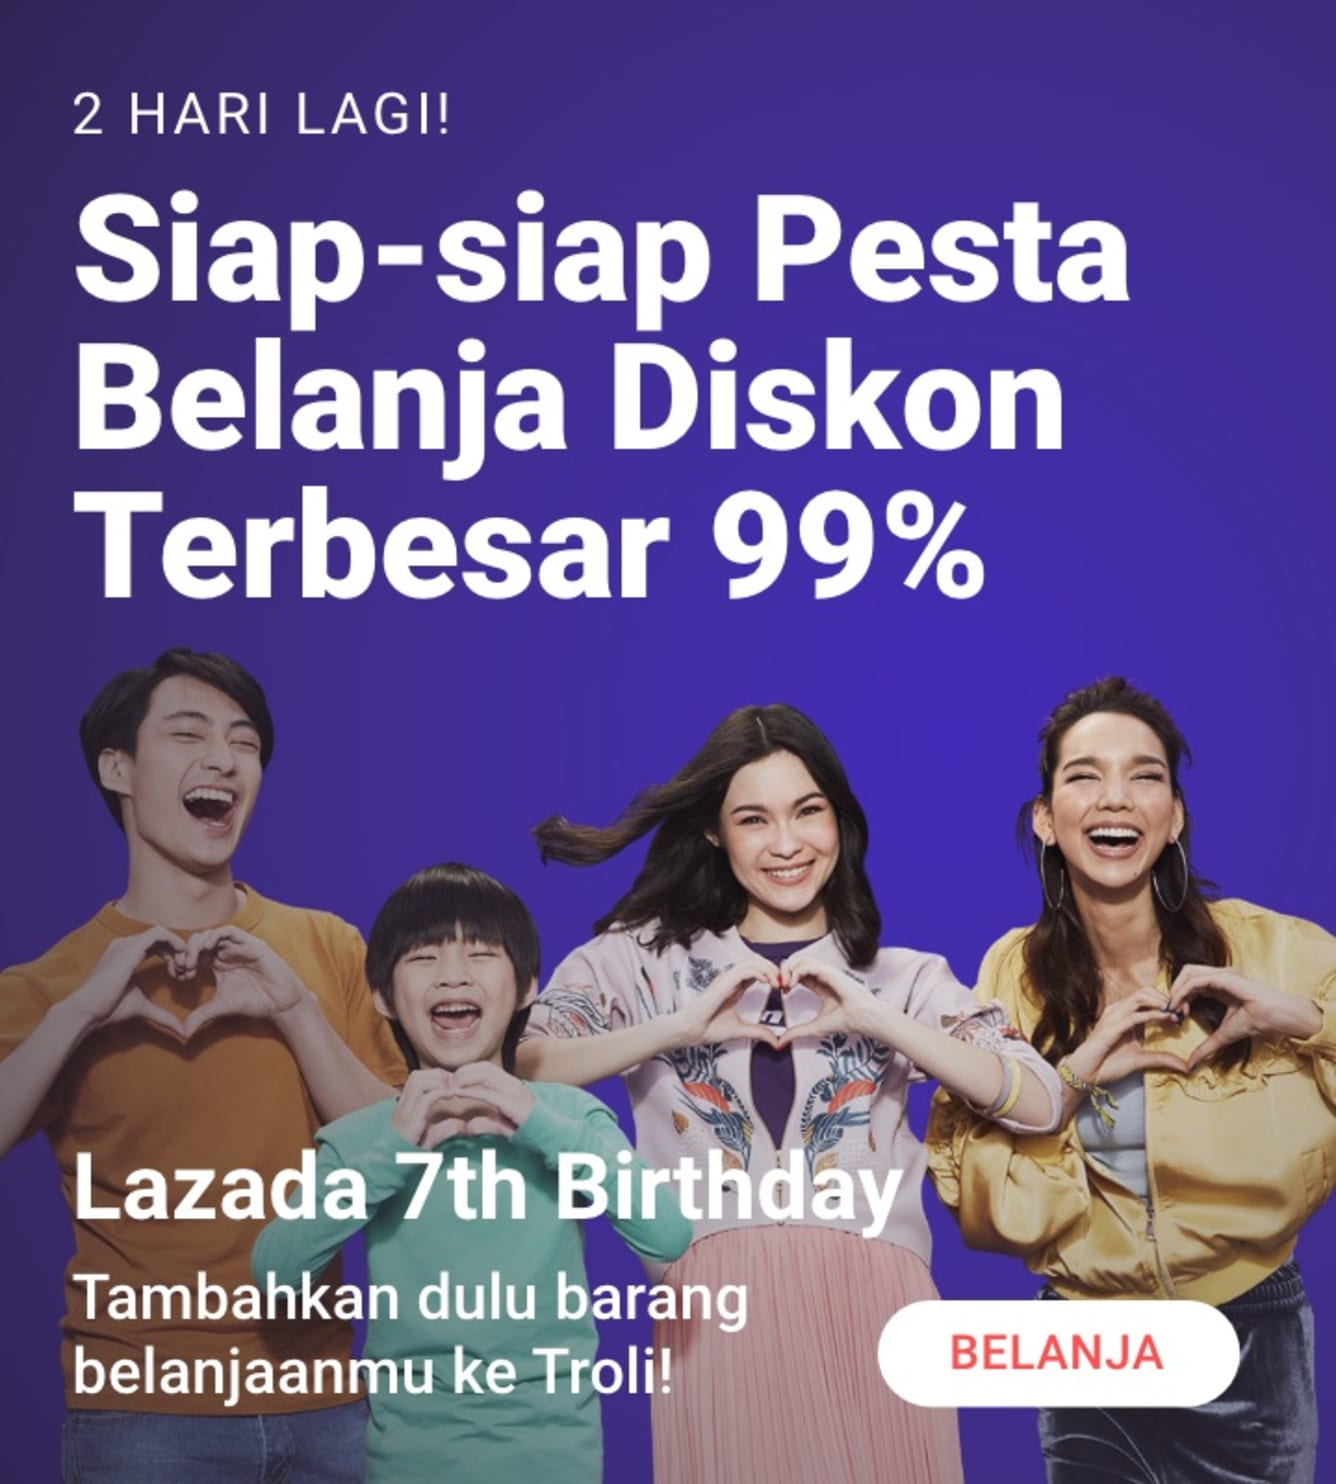 Week 13 - Promo Lazada Birthday